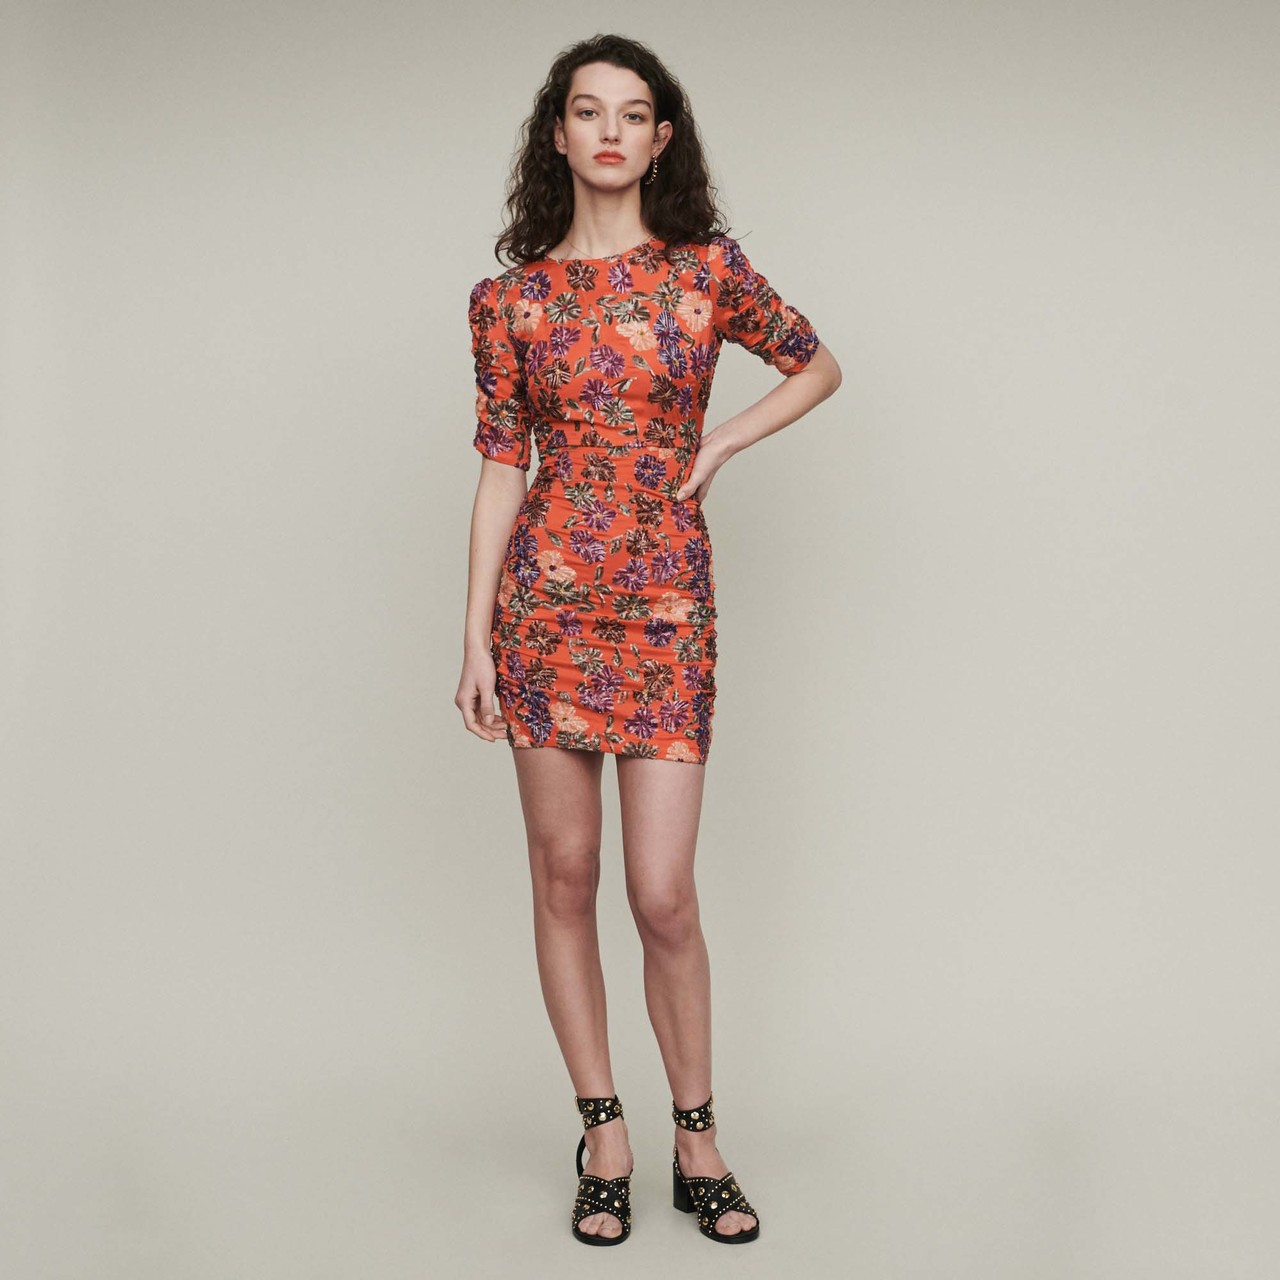 Sequin Embroidered Dress - Coral